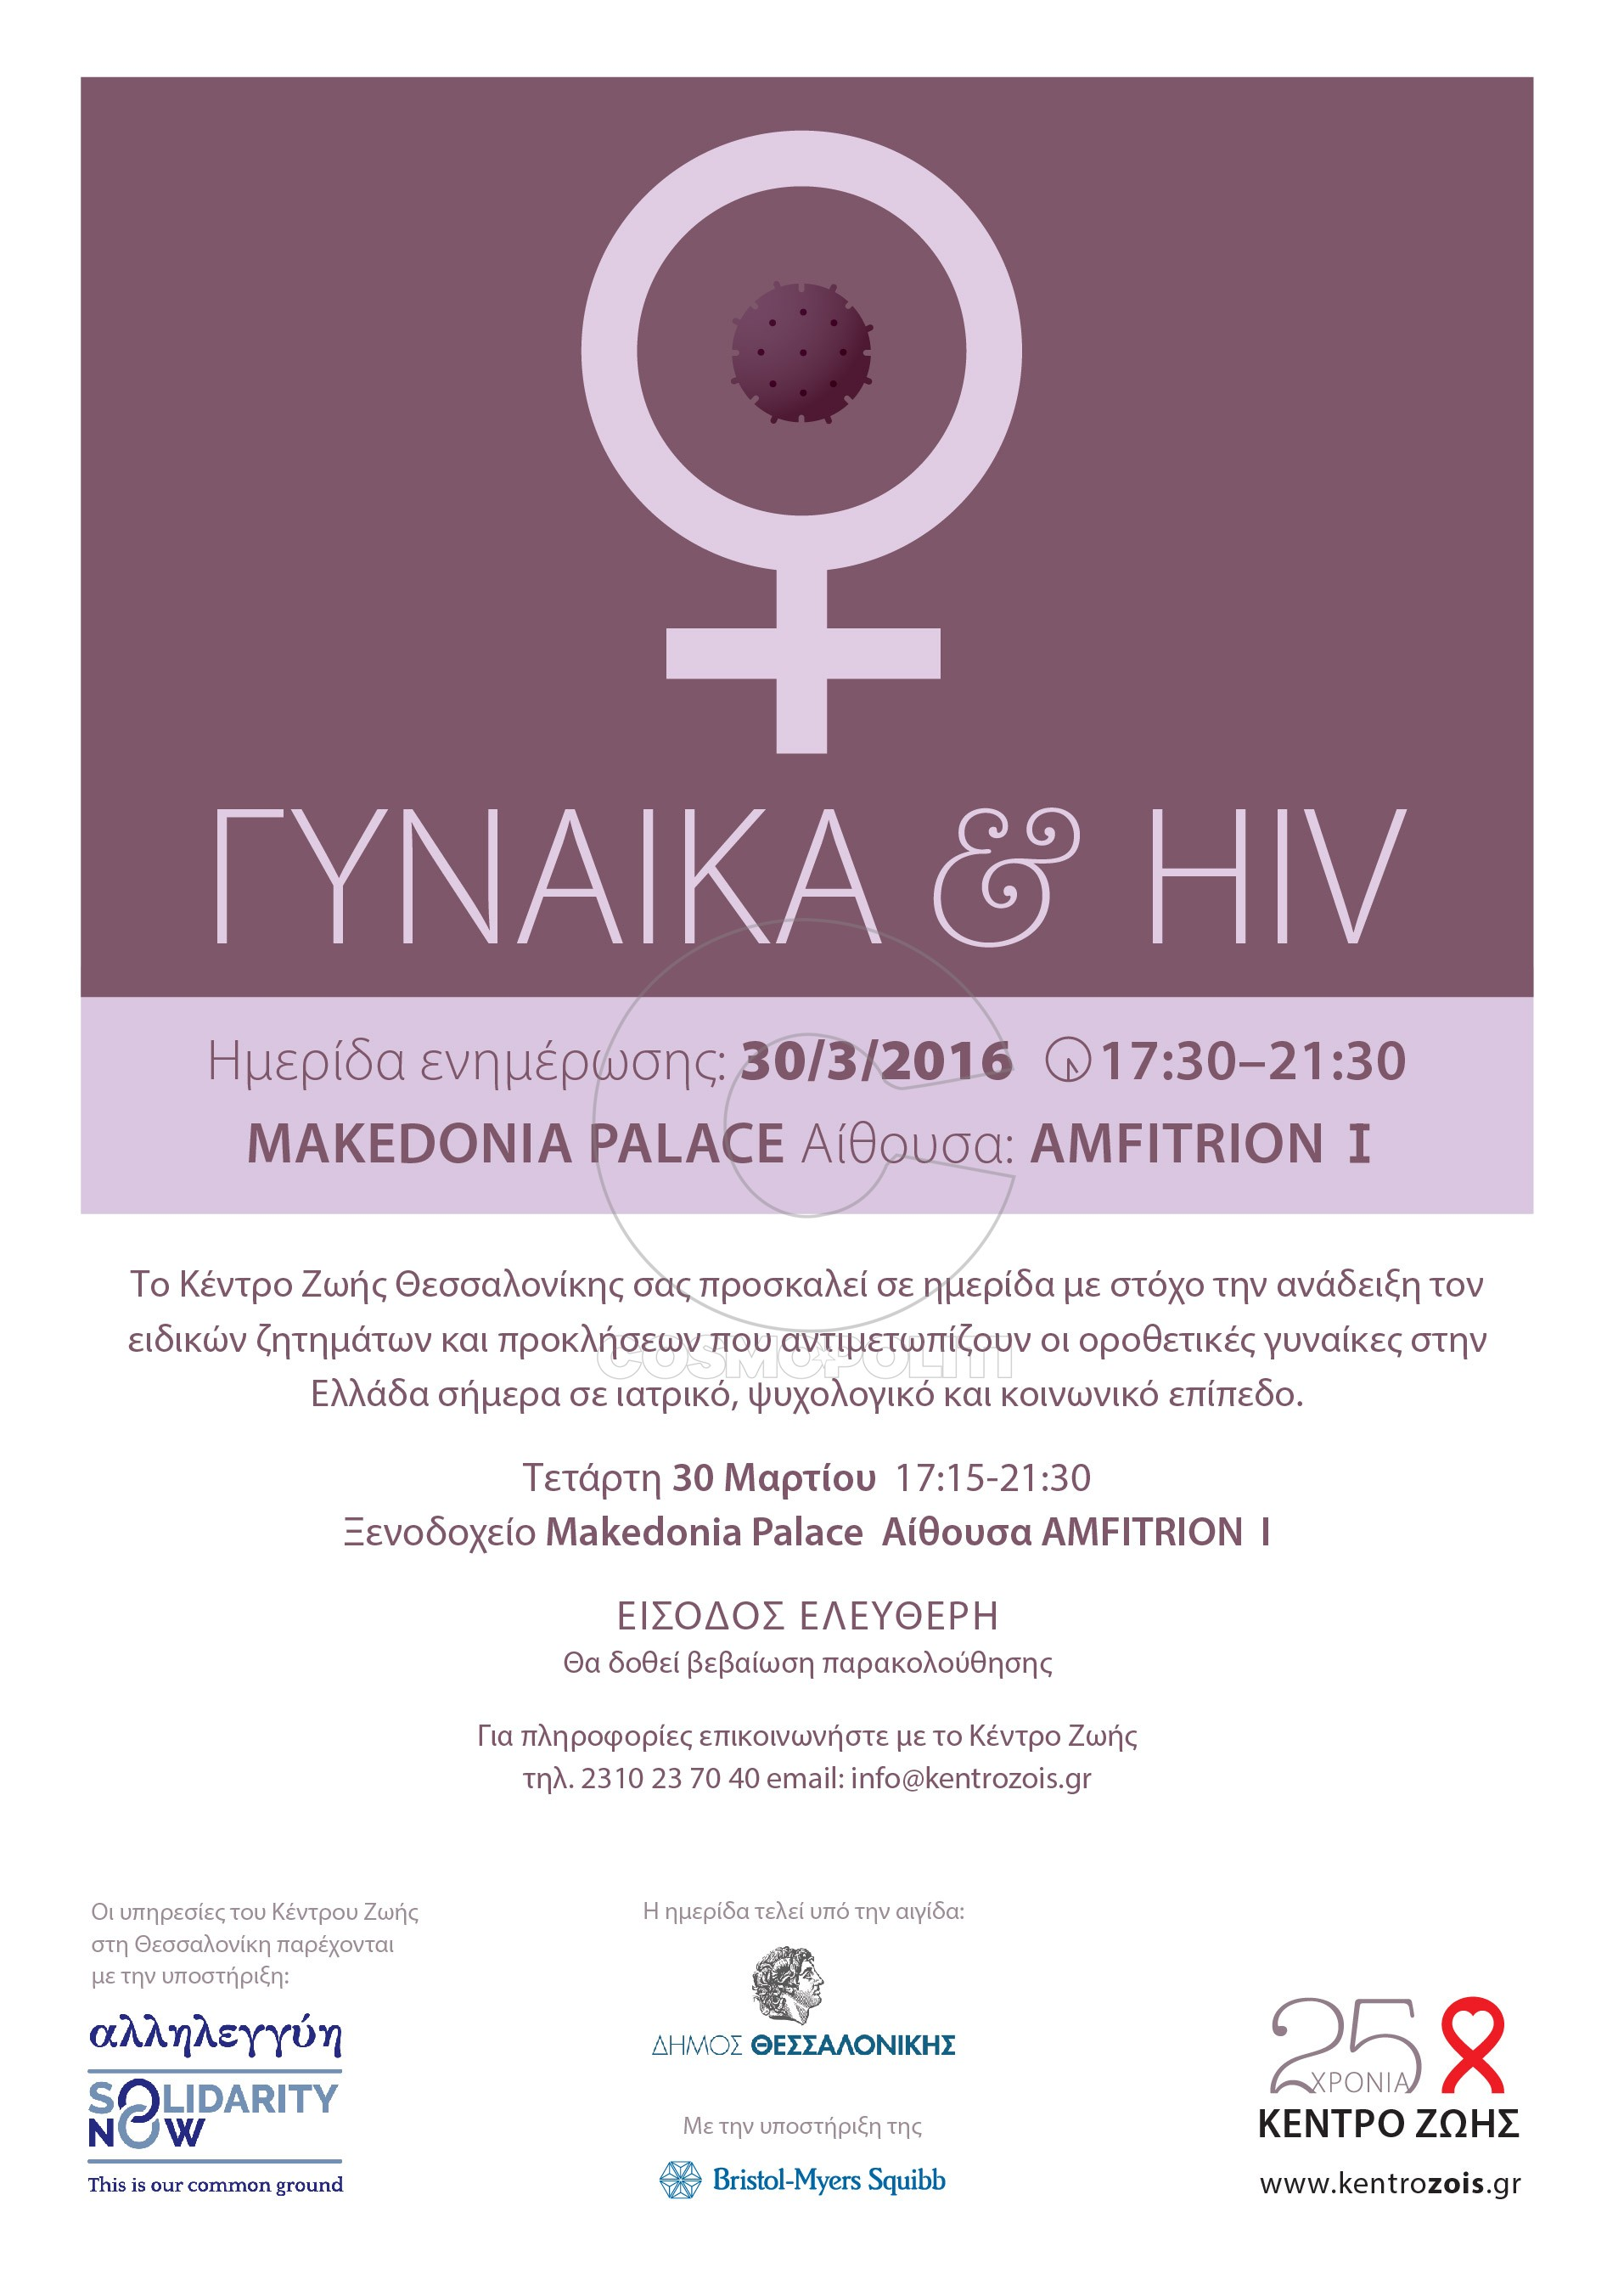 Women and HIV INV 4